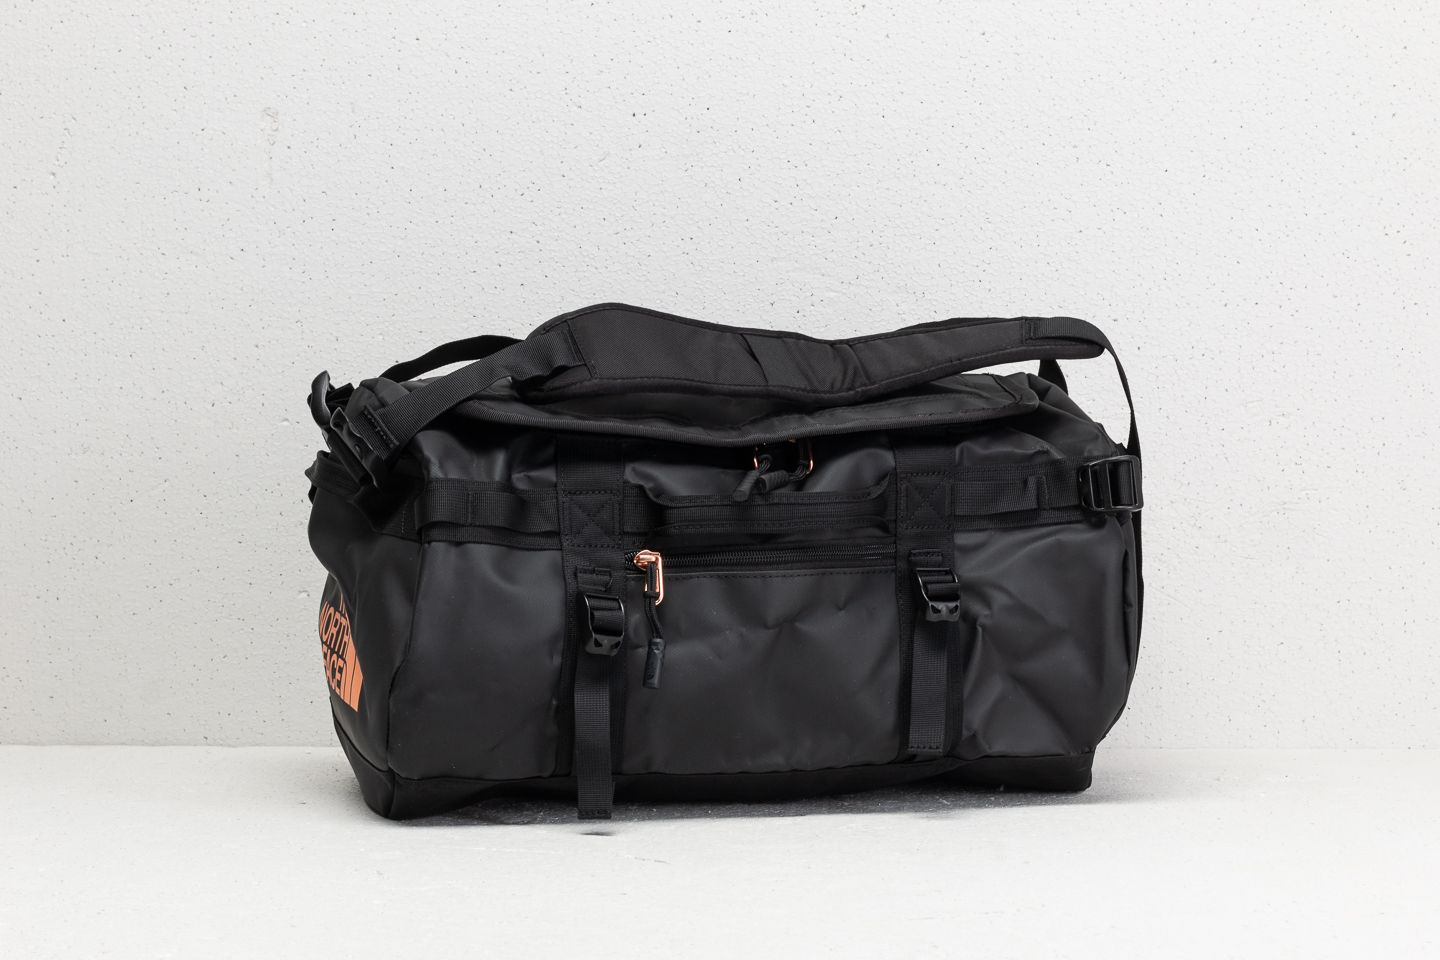 80cba6815 The North Face Base Camp Extra Small Duffel Tfn Black/ Metallic ...